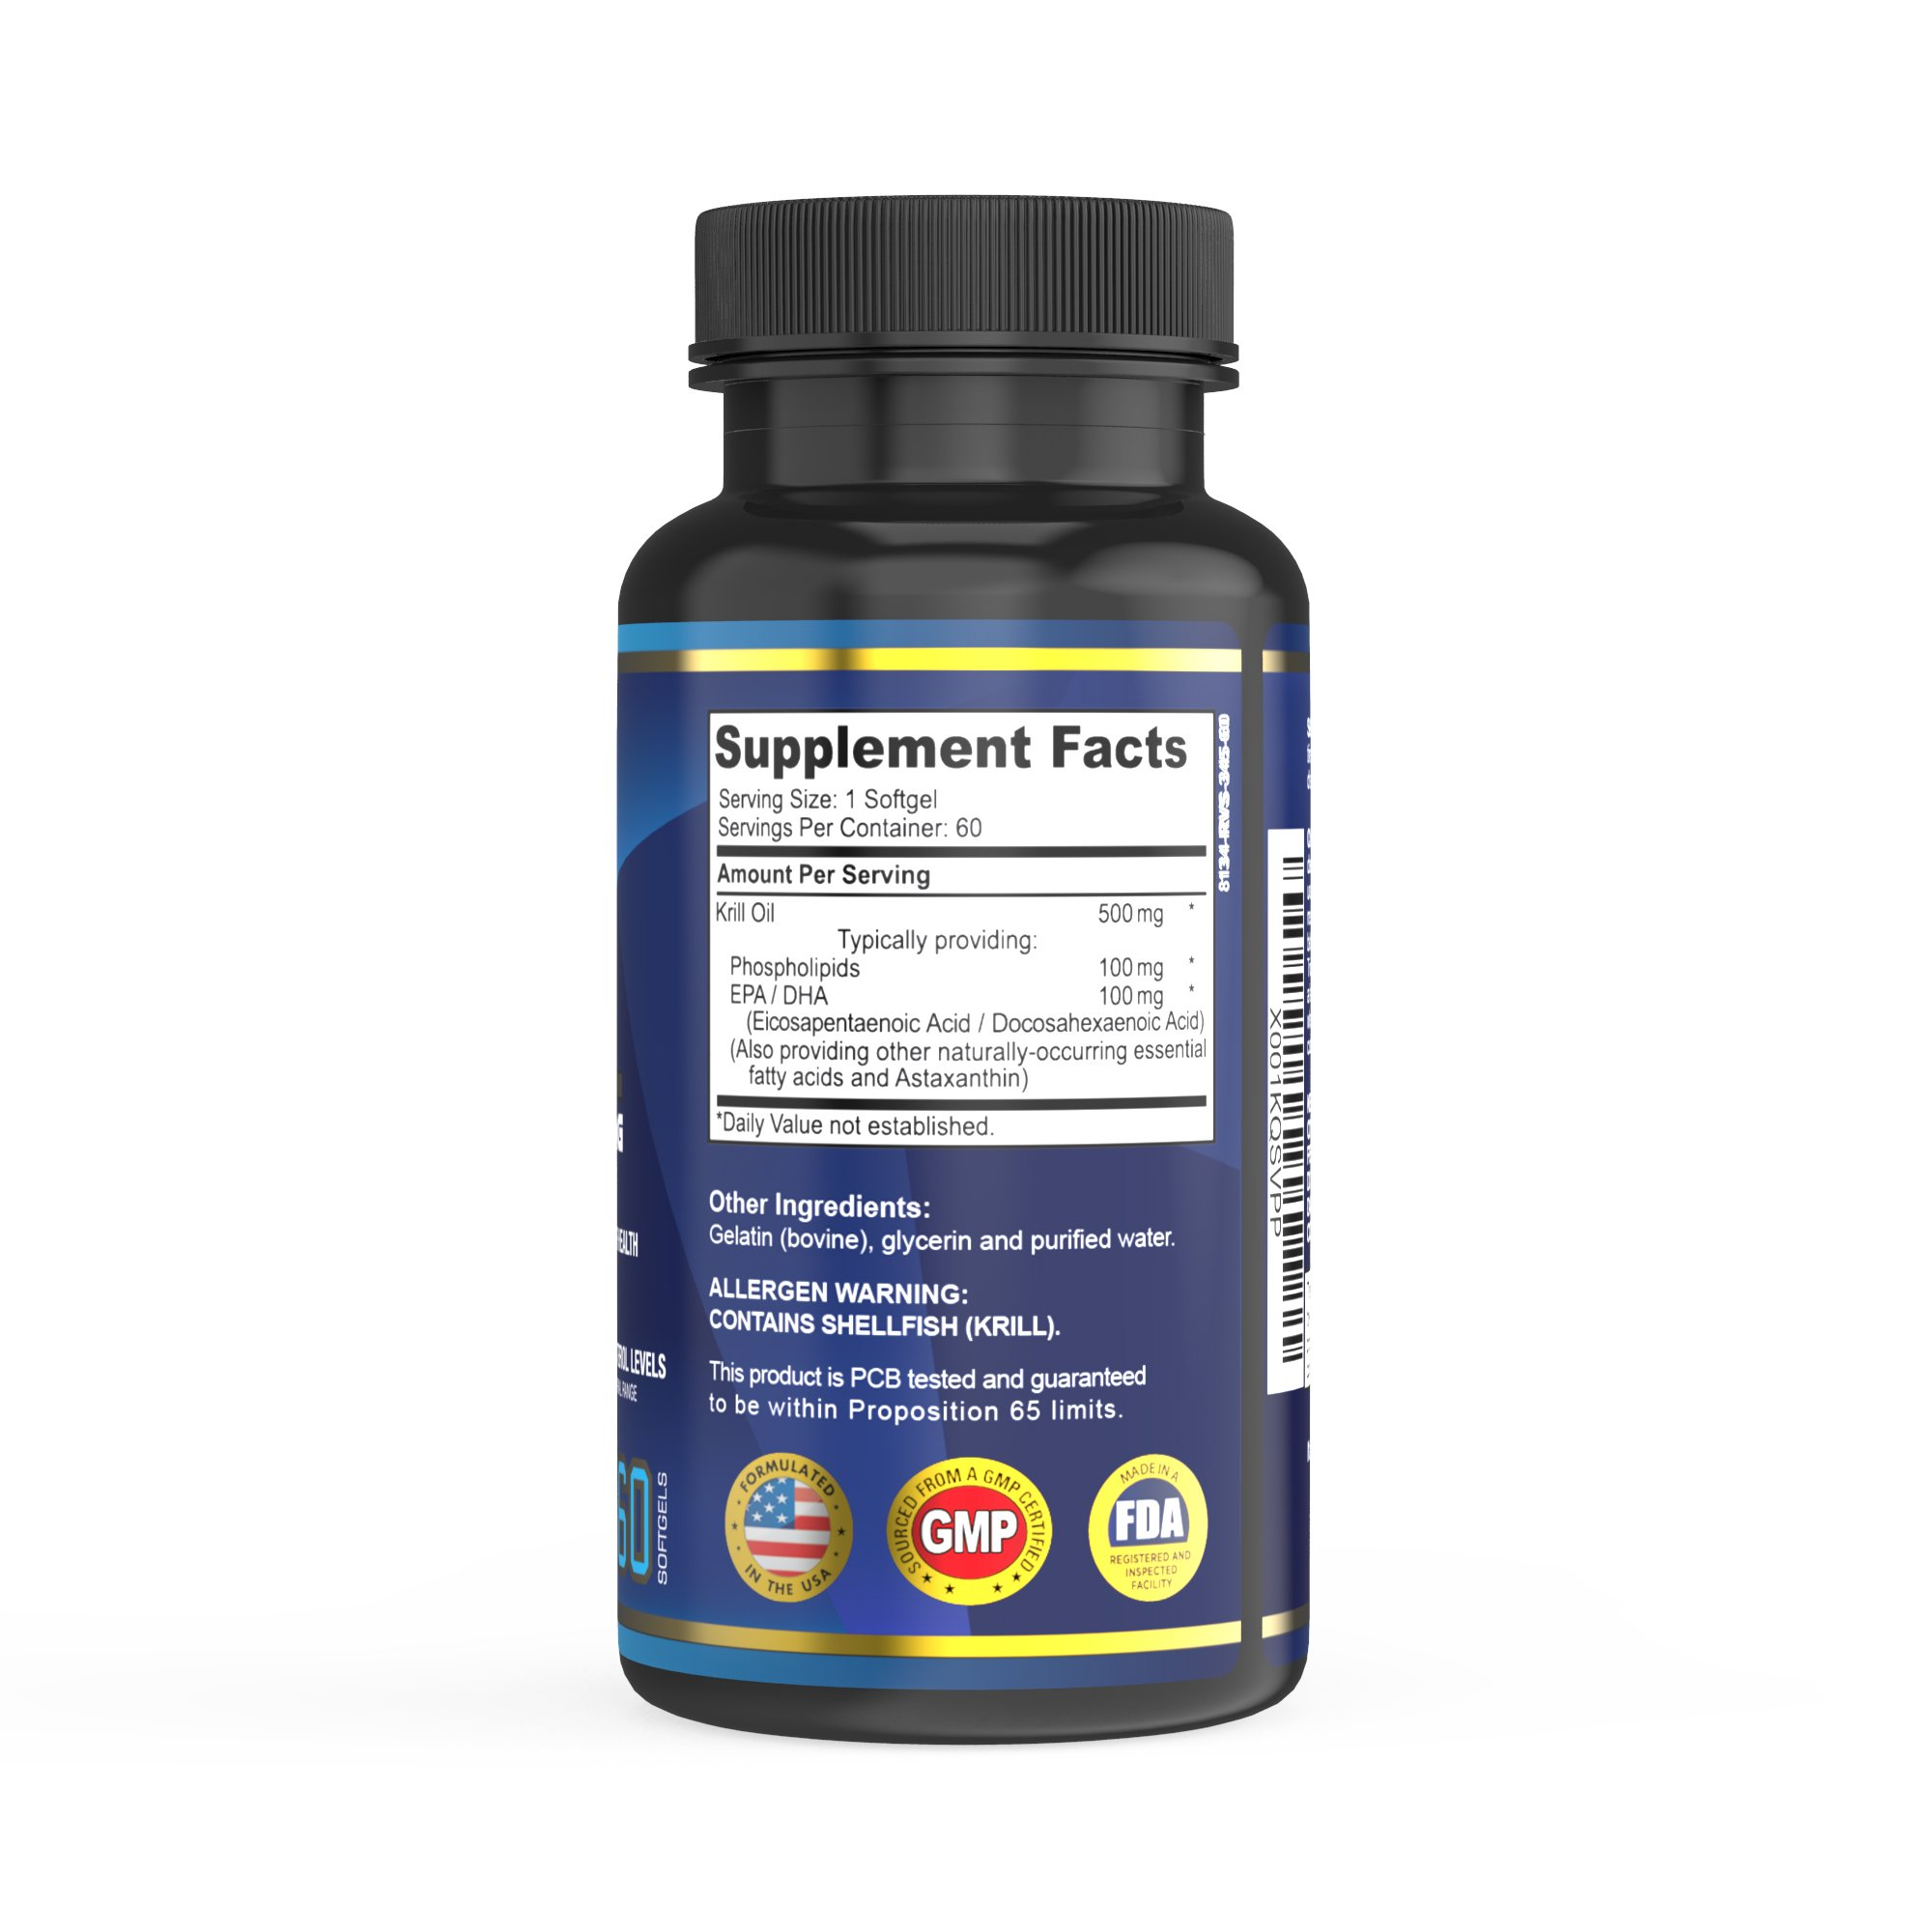 Premium Krill Oil Supplement with EPA/DHA by Fettle Excellence, Astaxanthin, Memory & Mood Enhancer, Boosts Energy, Fights Inflammation, Supports Healthy Joints and Cardiovascular Health, 60 softgels by Fettle Excellence (Image #2)